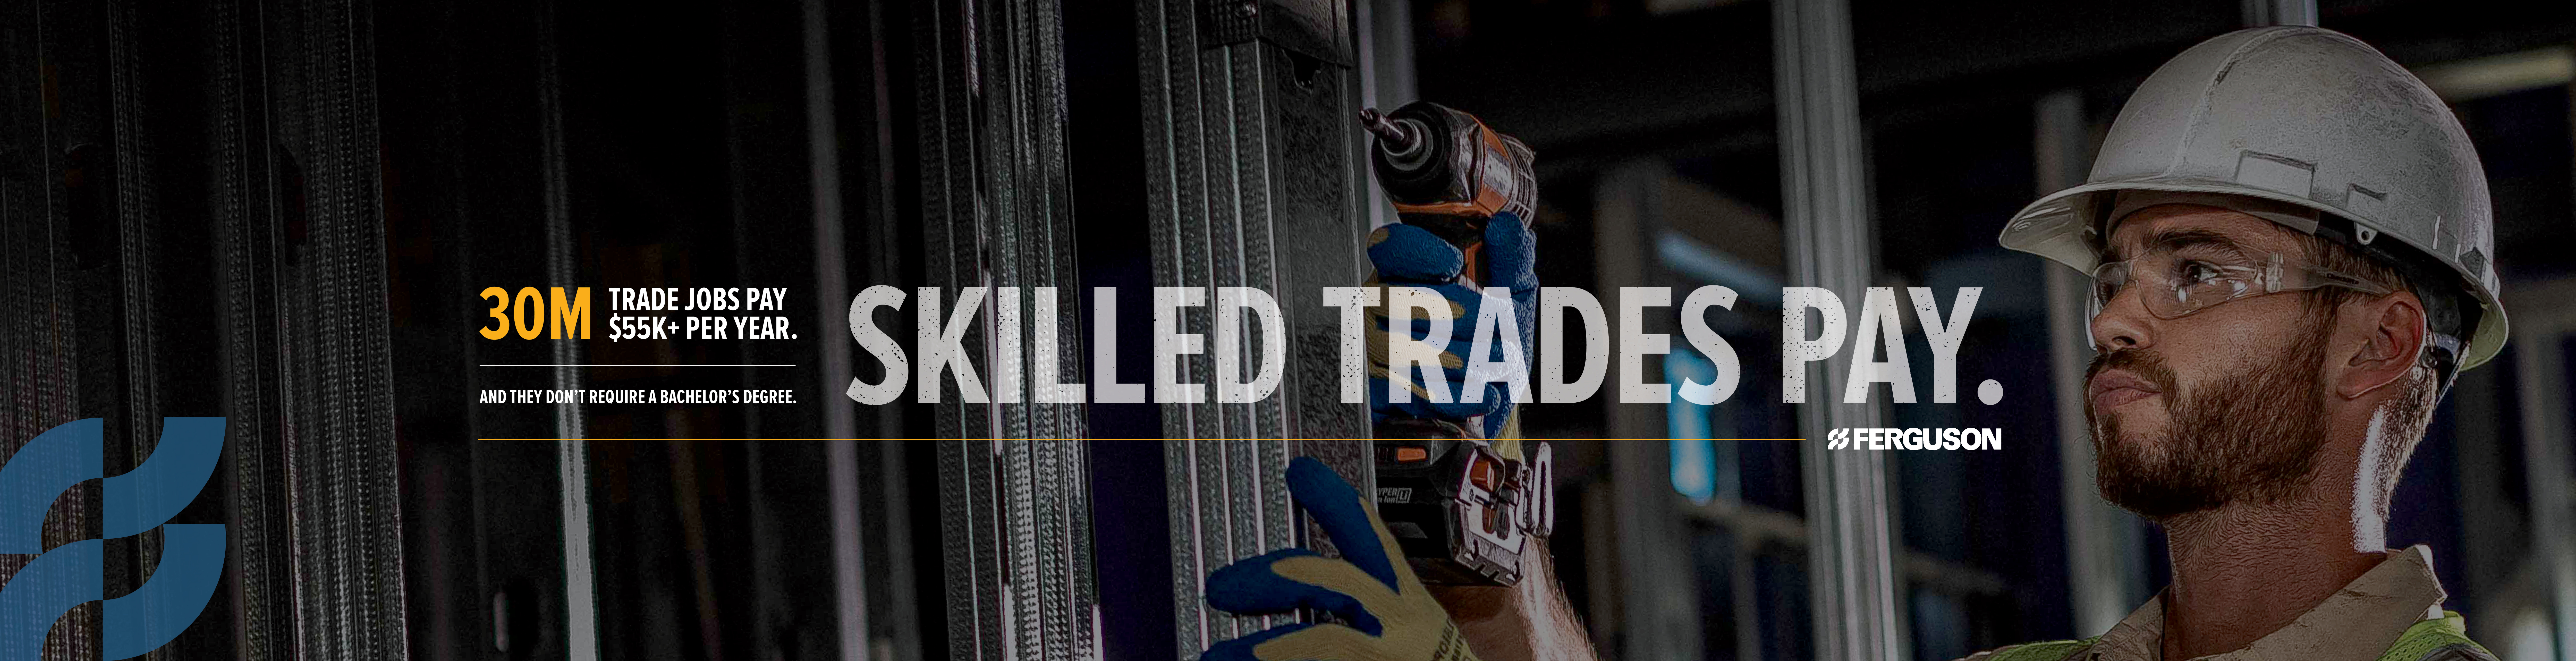 skilled-trades-pay